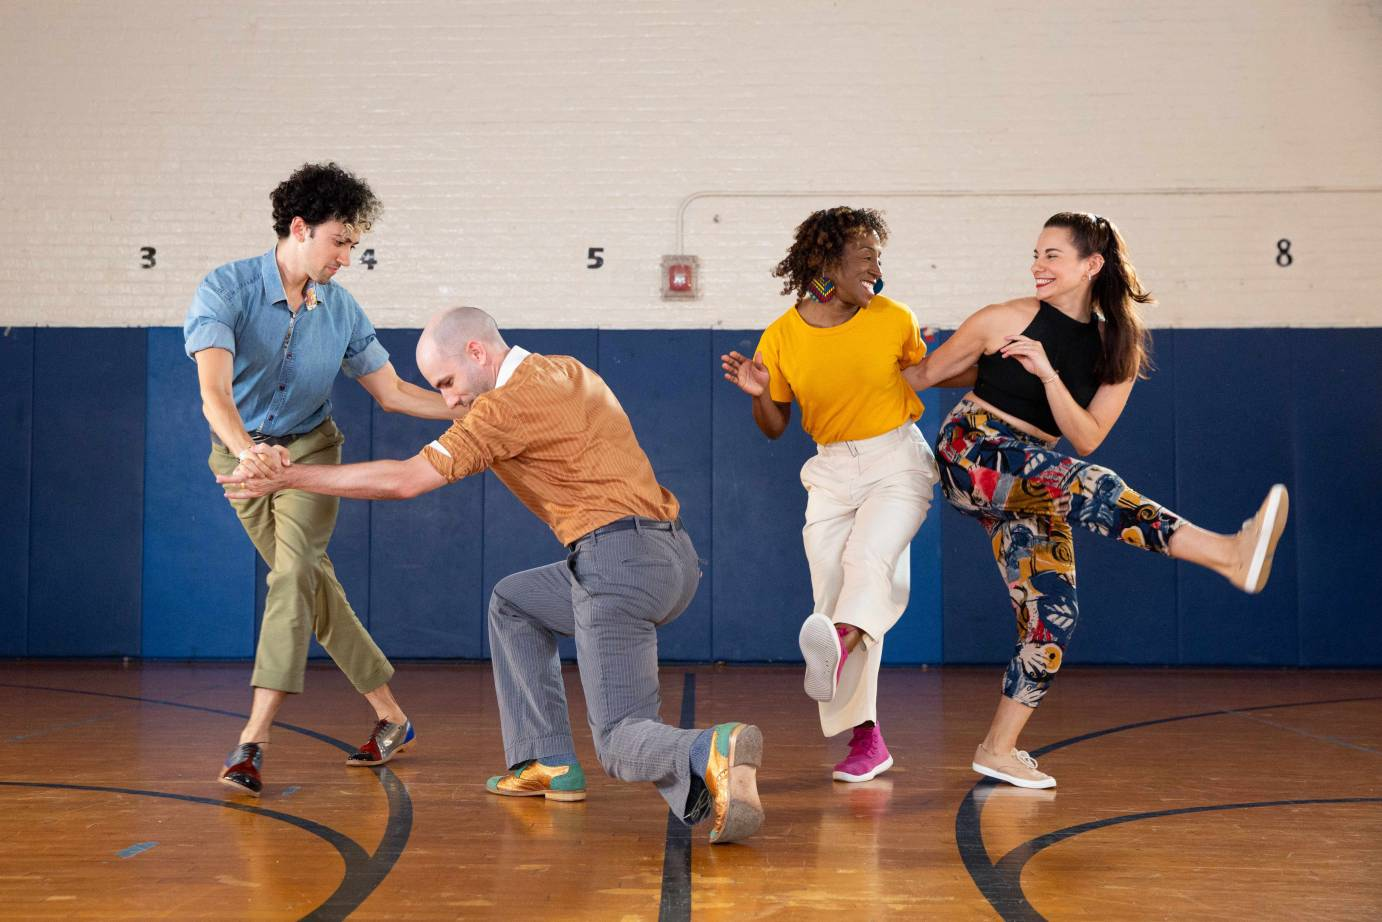 Two same-gender couples swing dance in brightly colored clothing